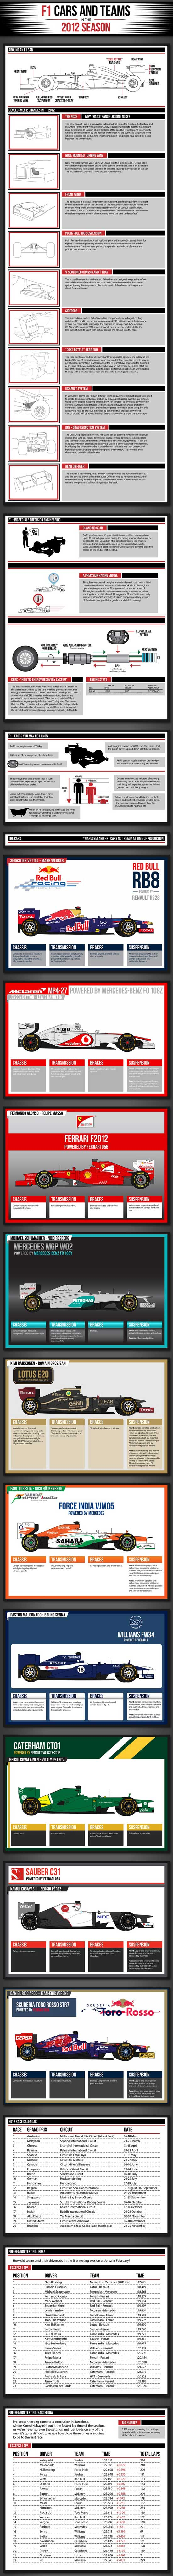 Formula One 2012 Infographic